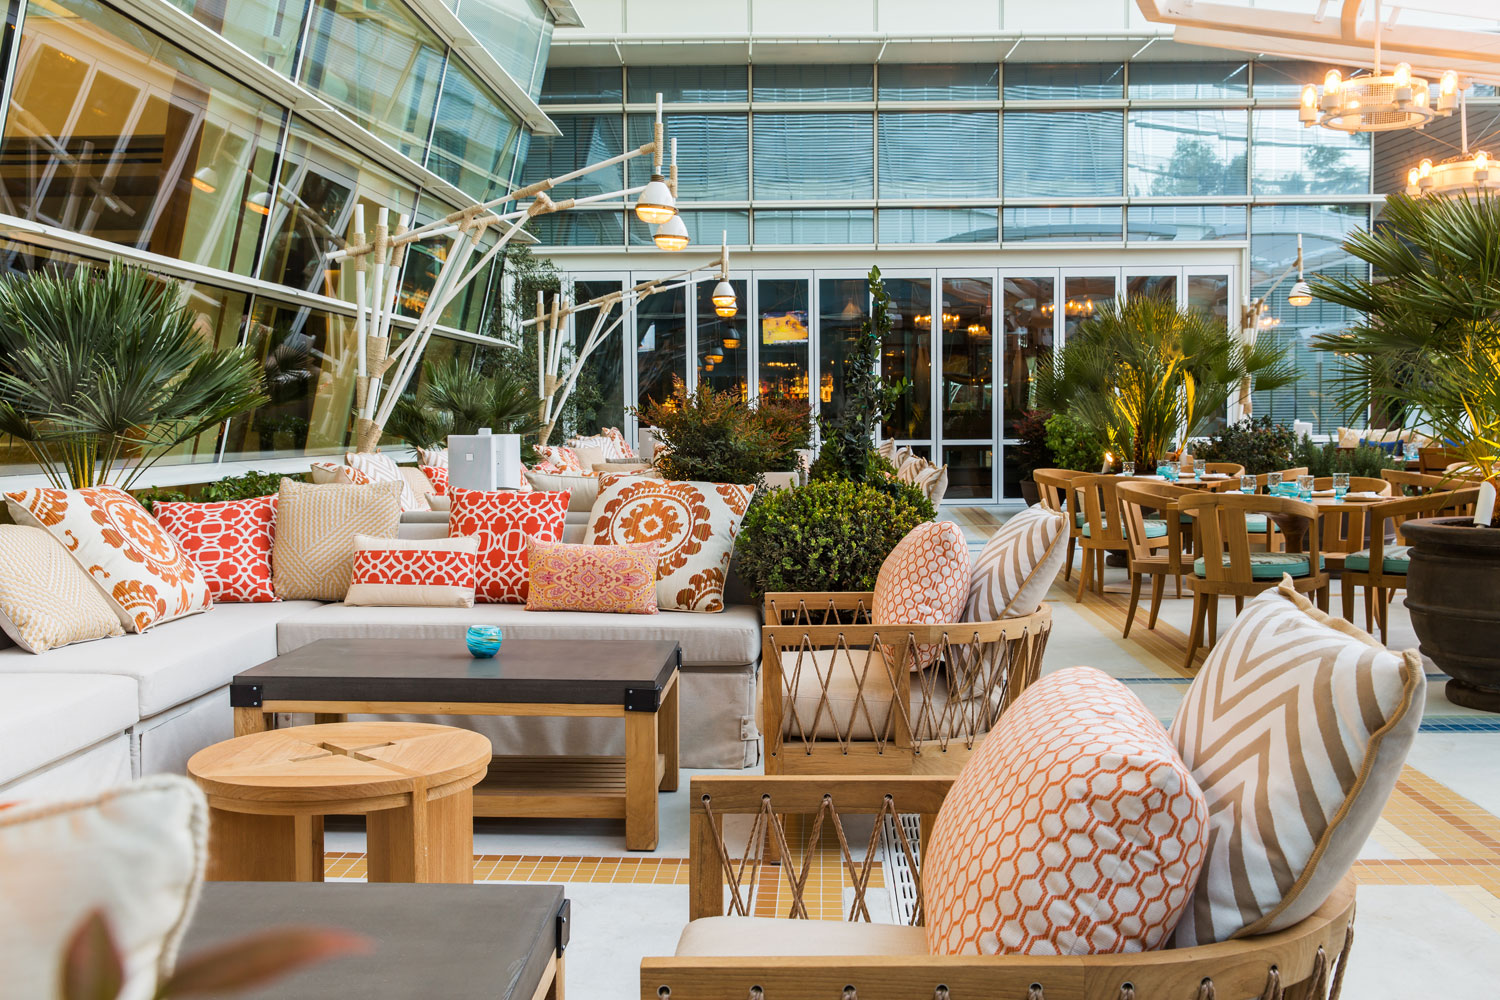 Herringbone at Aria has an outdoor patio overlooking the pool. Photo courtesy of Herringbone.